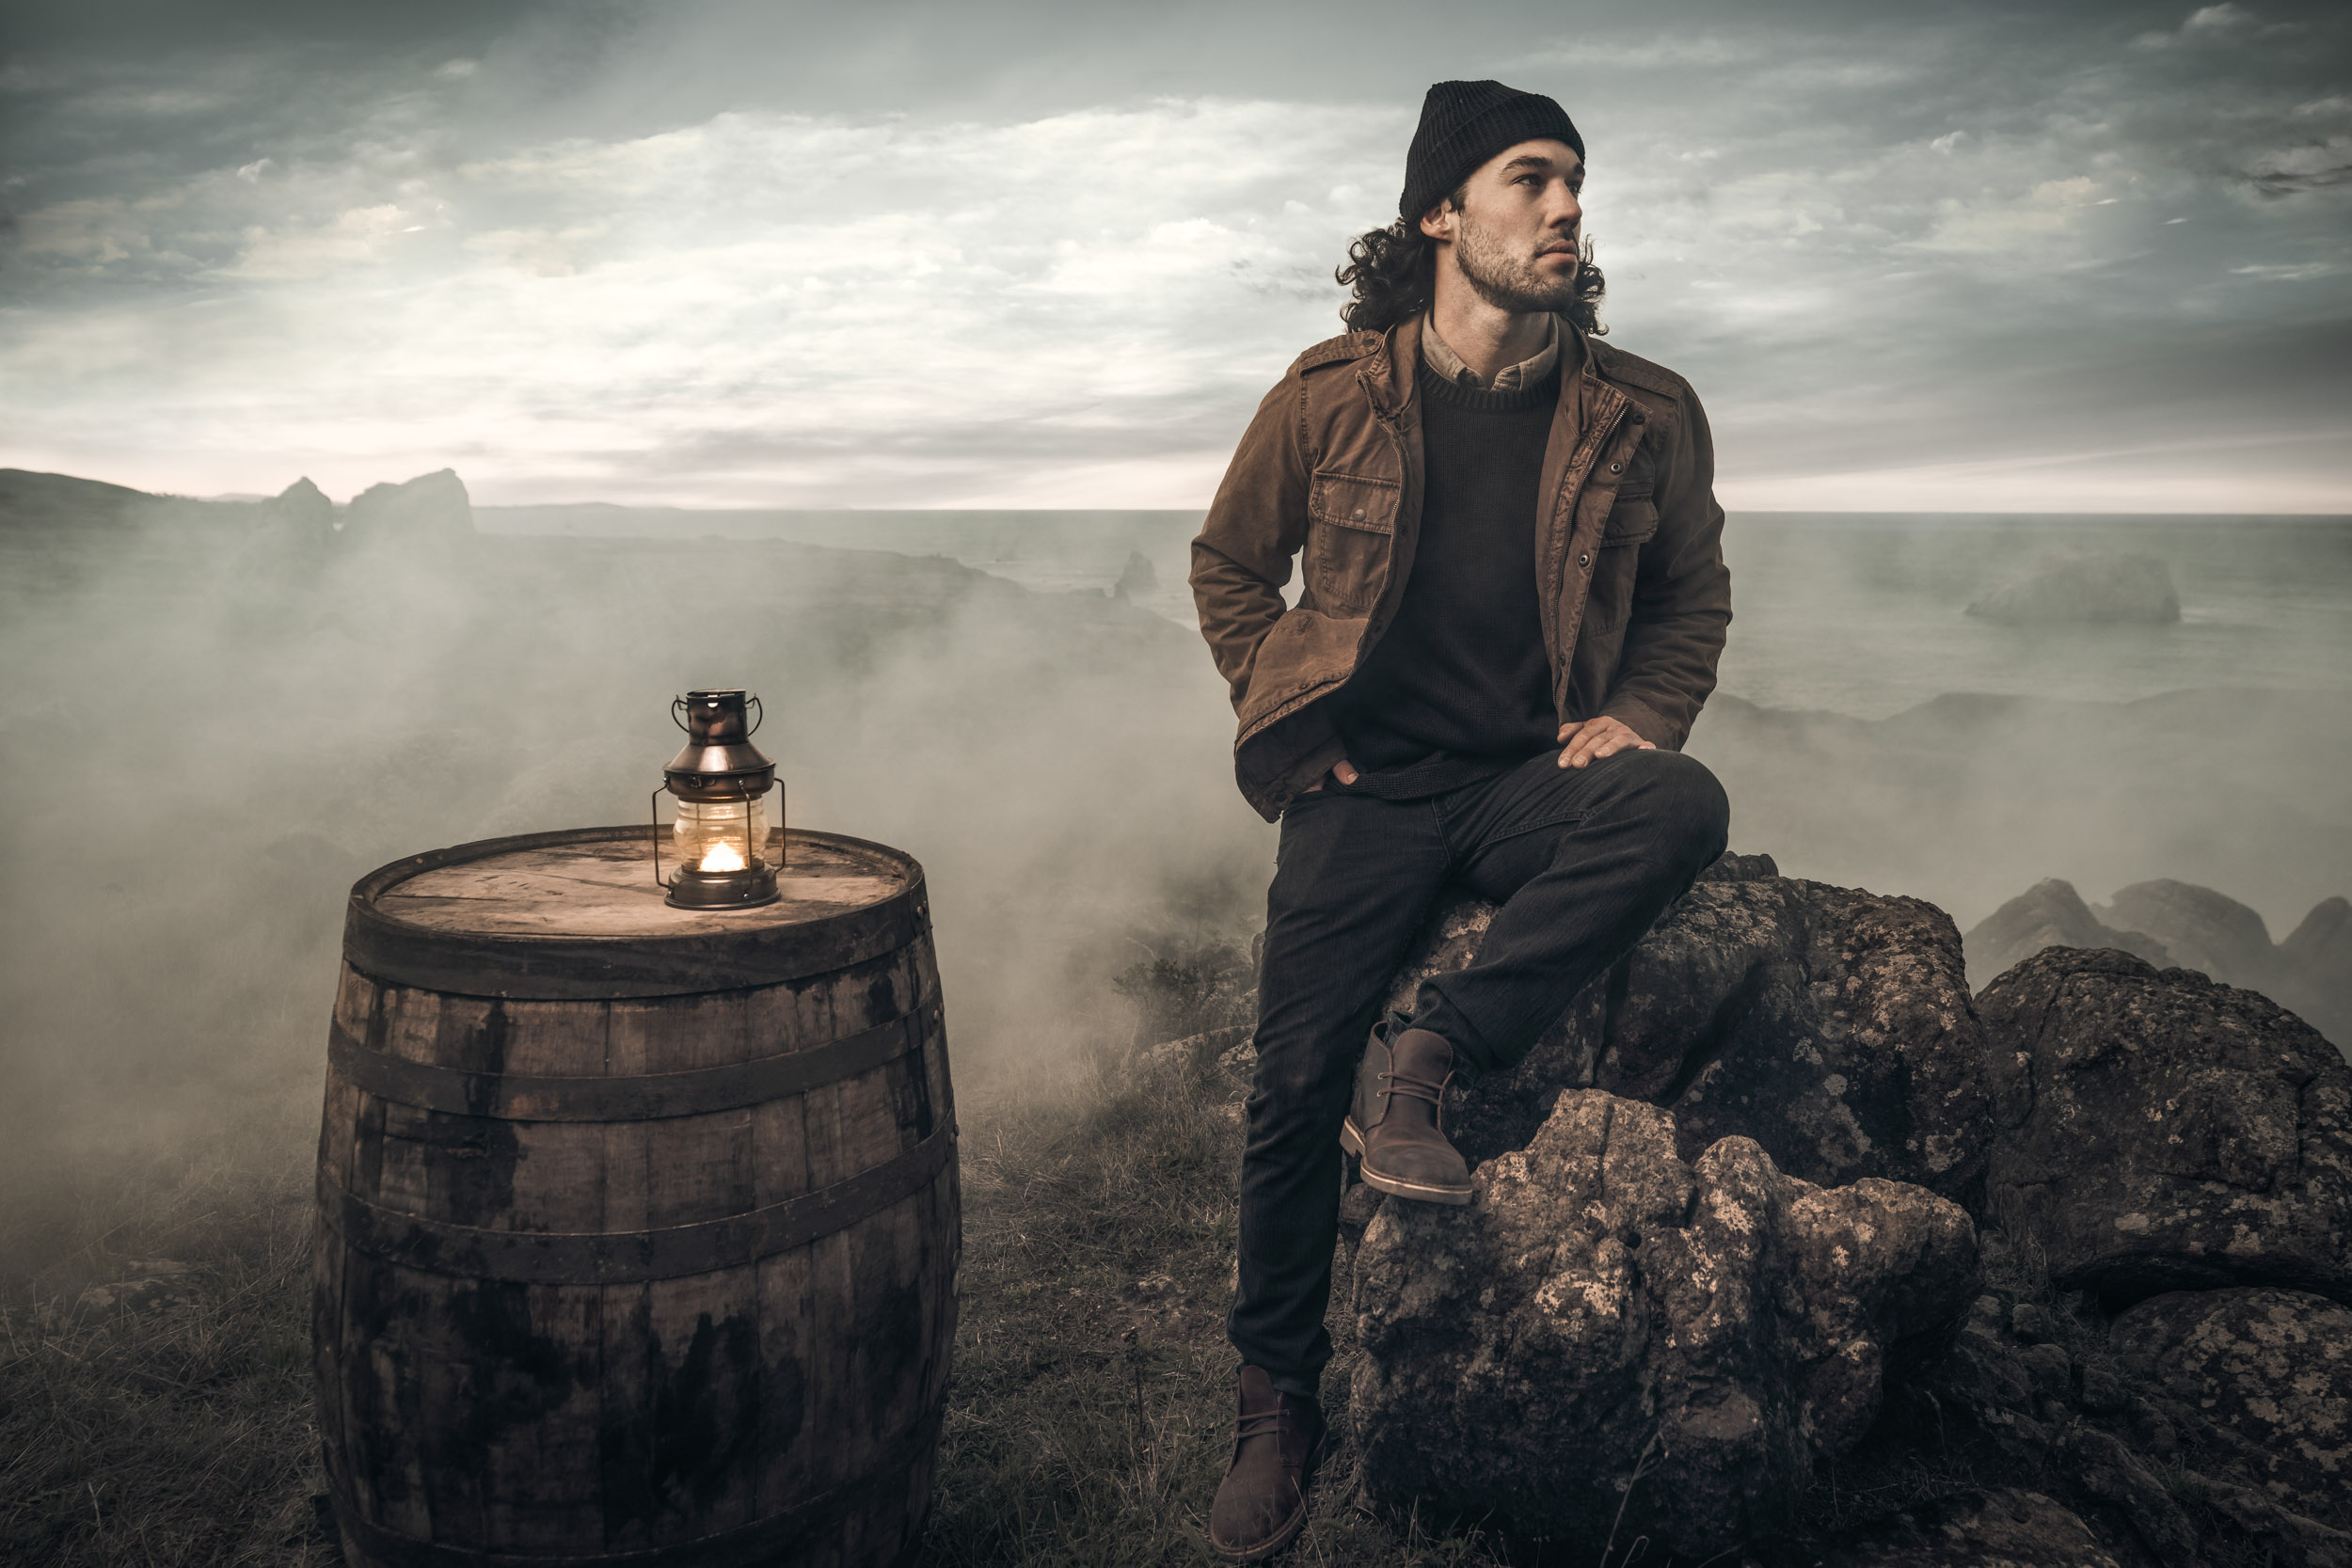 A lone bootlegger sits in the fog near a barrel of  Redwood Empire whiskey